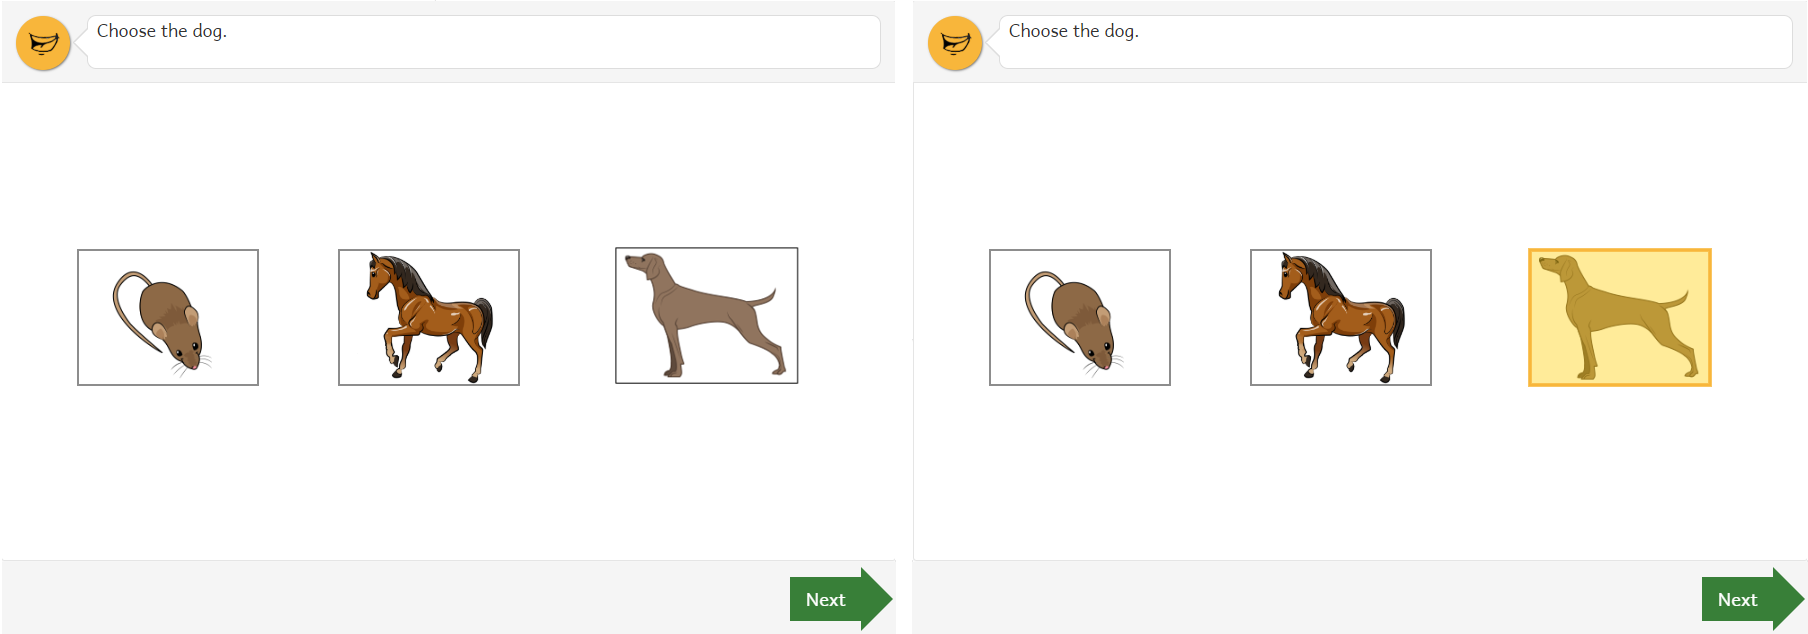 A question that asks you to choose a dog.